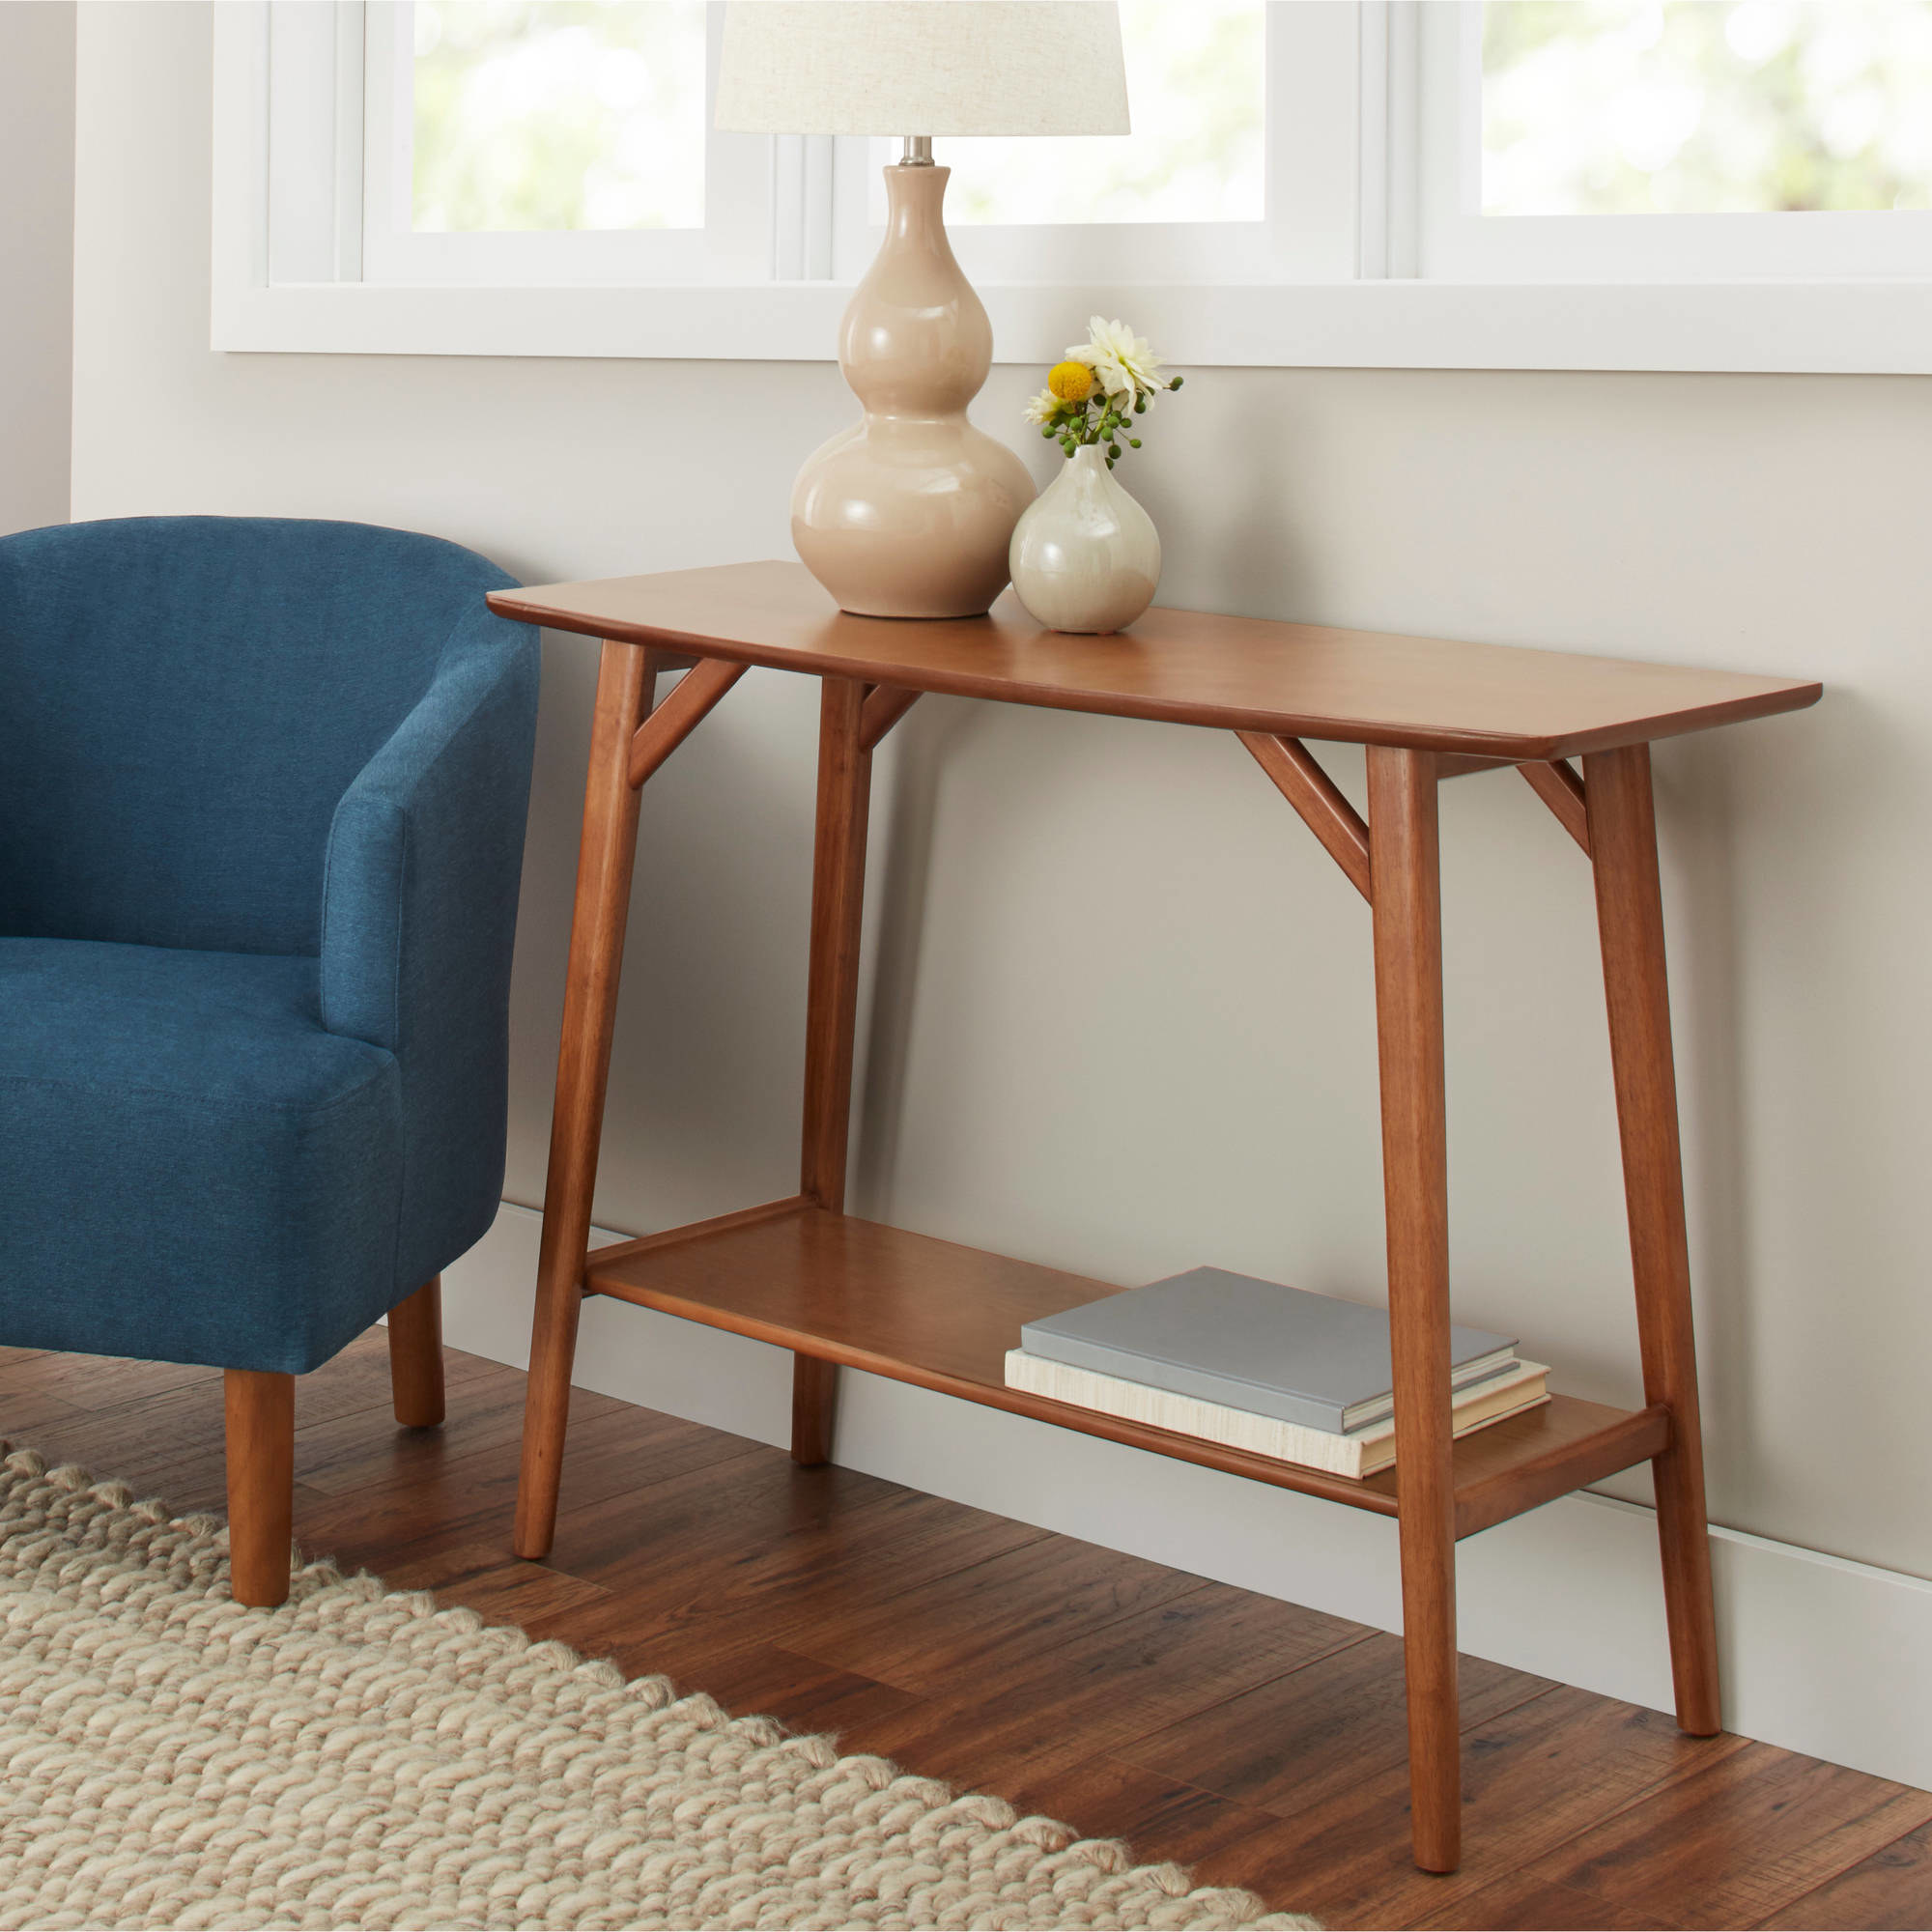 The console table in a living room setting